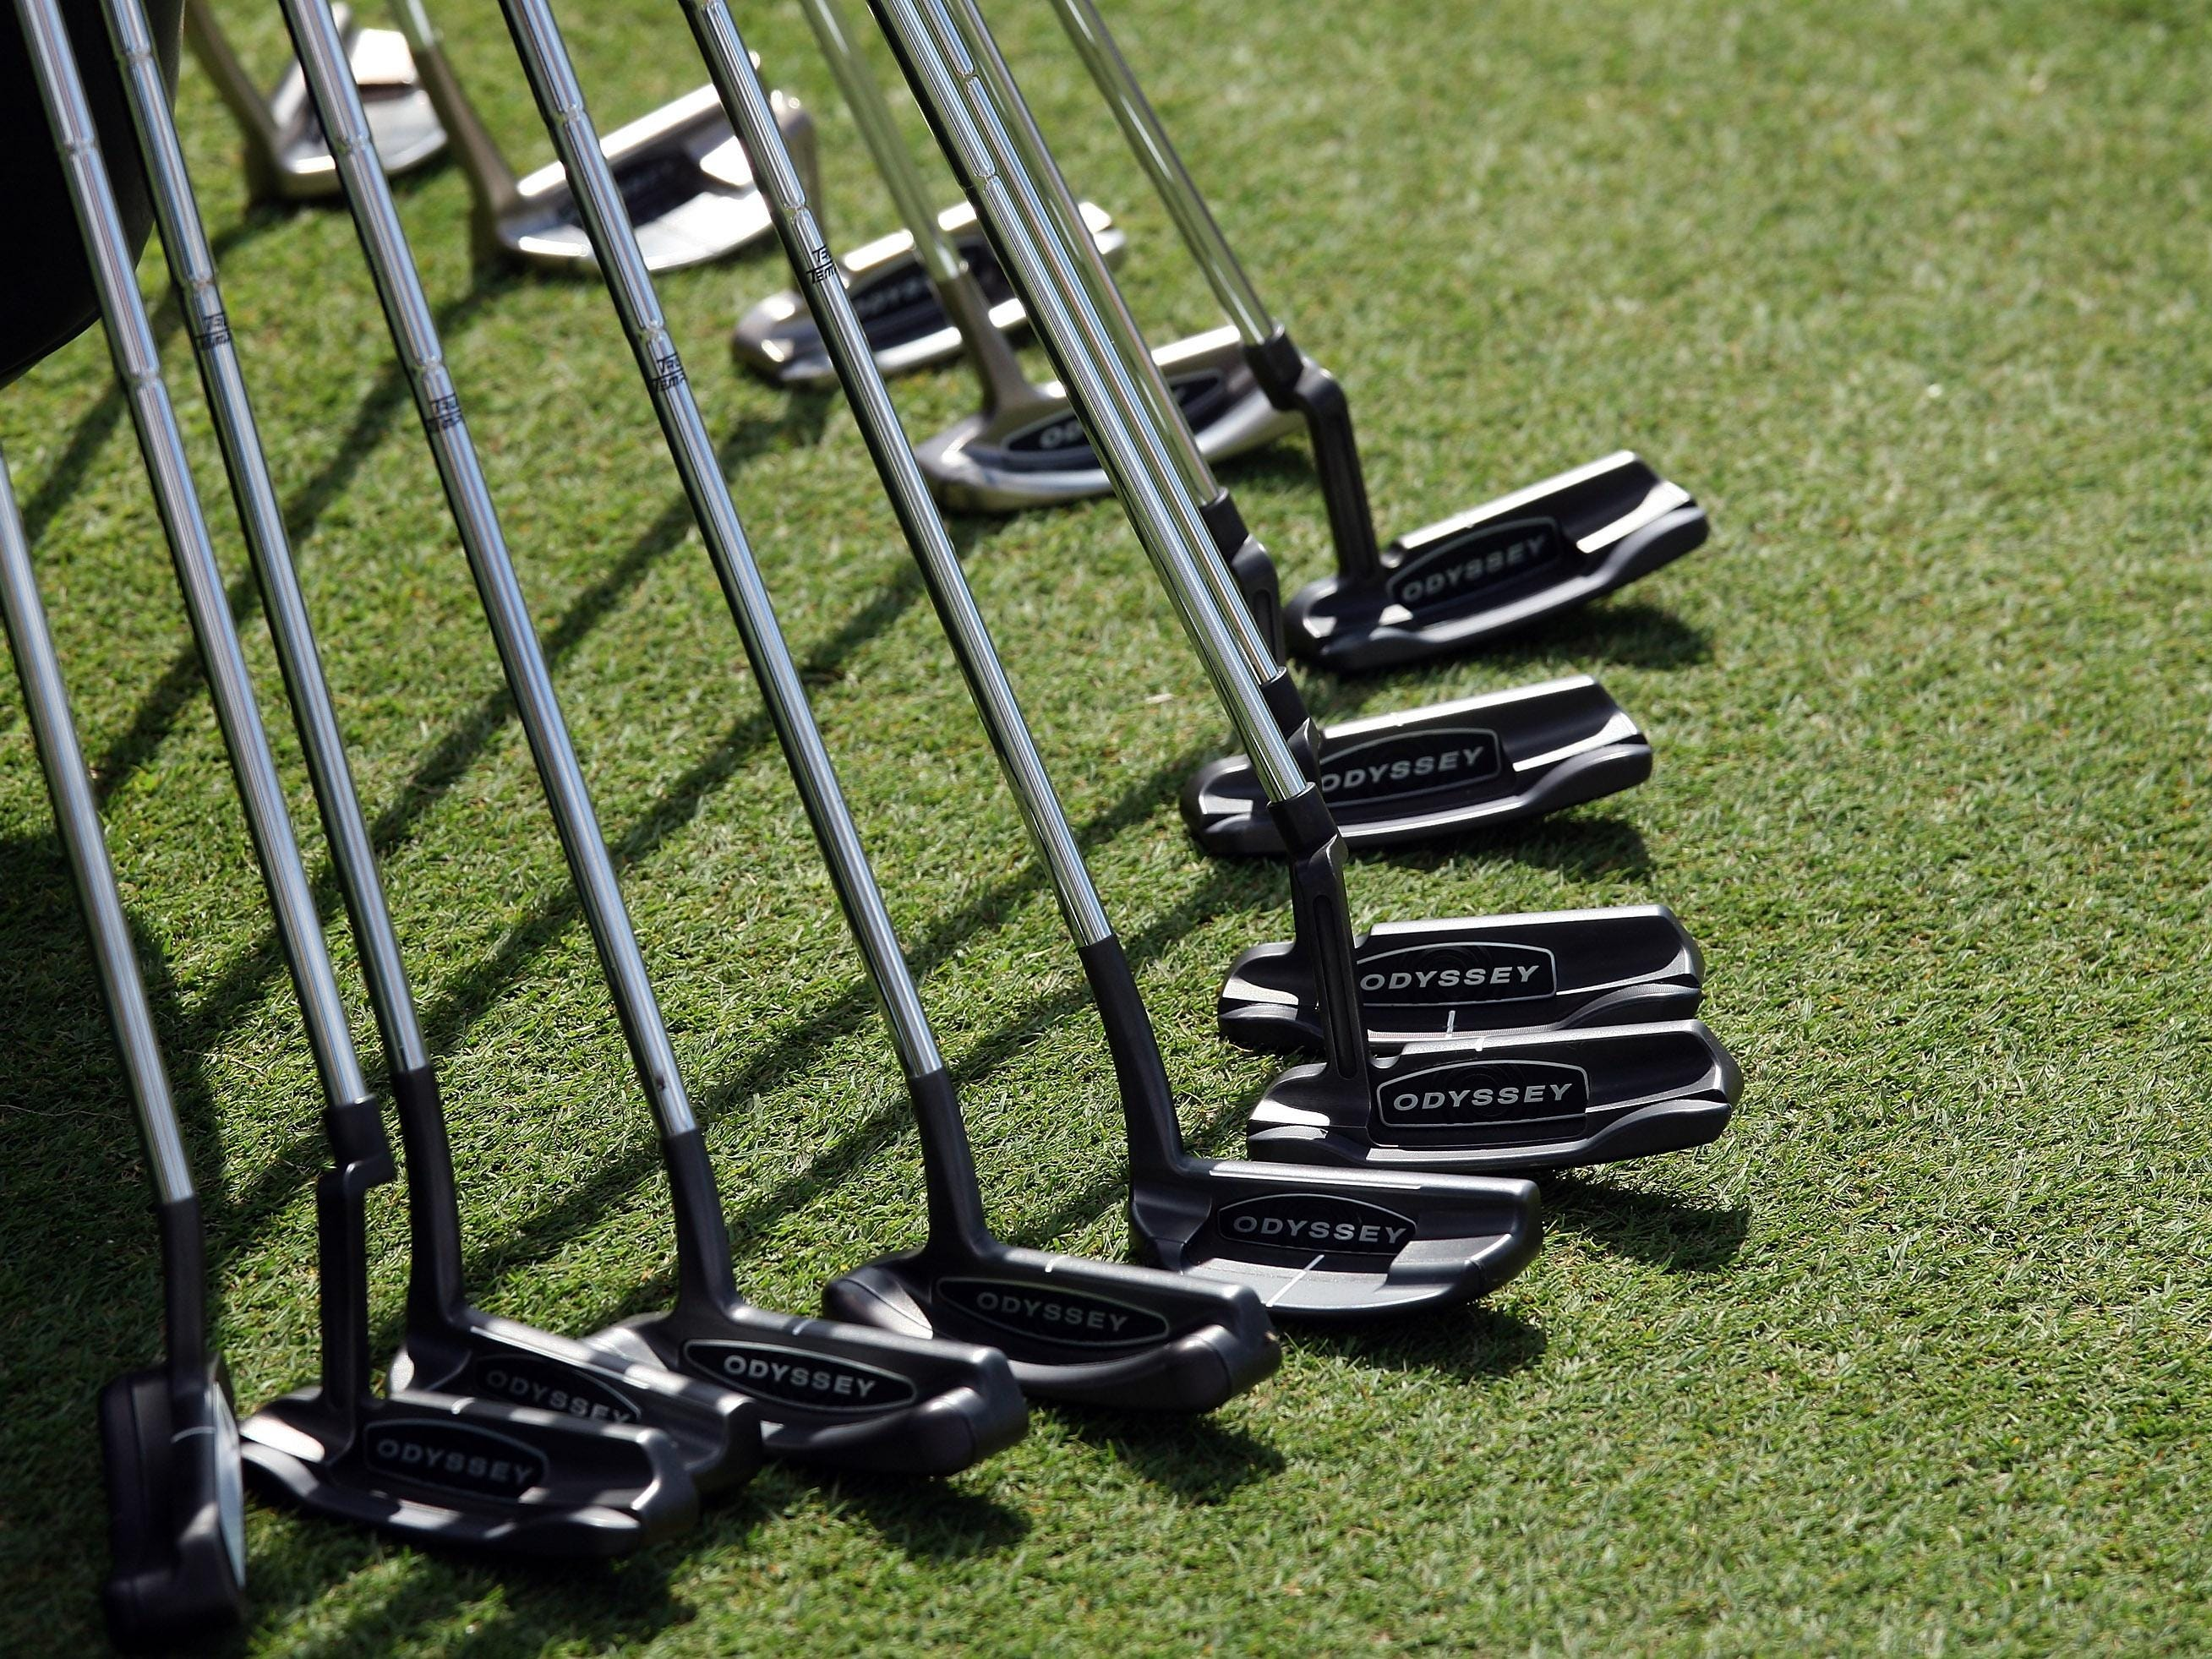 An array of putters